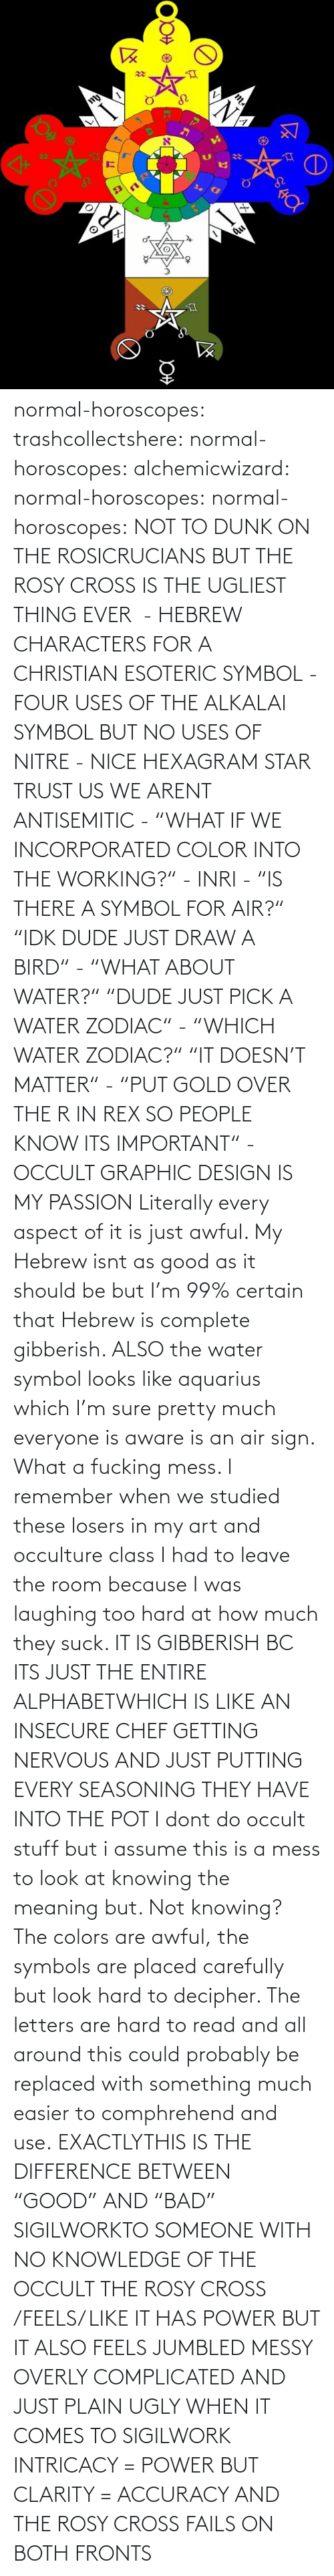 "putting: normal-horoscopes:  trashcollectshere: normal-horoscopes:   alchemicwizard:  normal-horoscopes:  normal-horoscopes: NOT TO DUNK ON THE ROSICRUCIANS BUT THE ROSY CROSS IS THE UGLIEST THING EVER  - HEBREW CHARACTERS FOR A CHRISTIAN ESOTERIC SYMBOL - FOUR USES OF THE ALKALAI SYMBOL BUT NO USES OF NITRE - NICE HEXAGRAM STAR TRUST US WE ARENT ANTISEMITIC - ""WHAT IF WE INCORPORATED COLOR INTO THE WORKING?"" - INRI - ""IS THERE A SYMBOL FOR AIR?"" ""IDK DUDE JUST DRAW A BIRD"" - ""WHAT ABOUT WATER?"" ""DUDE JUST PICK A WATER ZODIAC"" - ""WHICH WATER ZODIAC?"" ""IT DOESN'T MATTER"" - ""PUT GOLD OVER THE R IN REX SO PEOPLE KNOW ITS IMPORTANT"" - OCCULT GRAPHIC DESIGN IS MY PASSION  Literally every aspect of it is just awful. My Hebrew isnt as good as it should be but I'm 99% certain that Hebrew is complete gibberish.  ALSO the water symbol looks like aquarius which I'm sure pretty much everyone is aware is an air sign. What a fucking mess.  I remember when we studied these losers in my art and occulture class I had to leave the room because I was laughing too hard at how much they suck.   IT IS GIBBERISH BC ITS JUST THE ENTIRE ALPHABETWHICH IS LIKE AN INSECURE CHEF GETTING NERVOUS AND JUST PUTTING EVERY SEASONING THEY HAVE INTO THE POT     I dont do occult stuff but i assume this is a mess to look at knowing the meaning but. Not knowing? The colors are awful, the symbols are placed carefully but look hard to decipher. The letters are hard to read and all around this could probably be replaced with something much easier to comphrehend and use.  EXACTLYTHIS IS THE DIFFERENCE BETWEEN ""GOOD"" AND ""BAD"" SIGILWORKTO SOMEONE WITH NO KNOWLEDGE OF THE OCCULT THE ROSY CROSS /FEELS/ LIKE IT HAS POWER BUT IT ALSO FEELS JUMBLED MESSY OVERLY COMPLICATED AND JUST PLAIN UGLY WHEN IT COMES TO SIGILWORK INTRICACY = POWER BUT CLARITY = ACCURACY AND THE ROSY CROSS FAILS ON BOTH FRONTS"